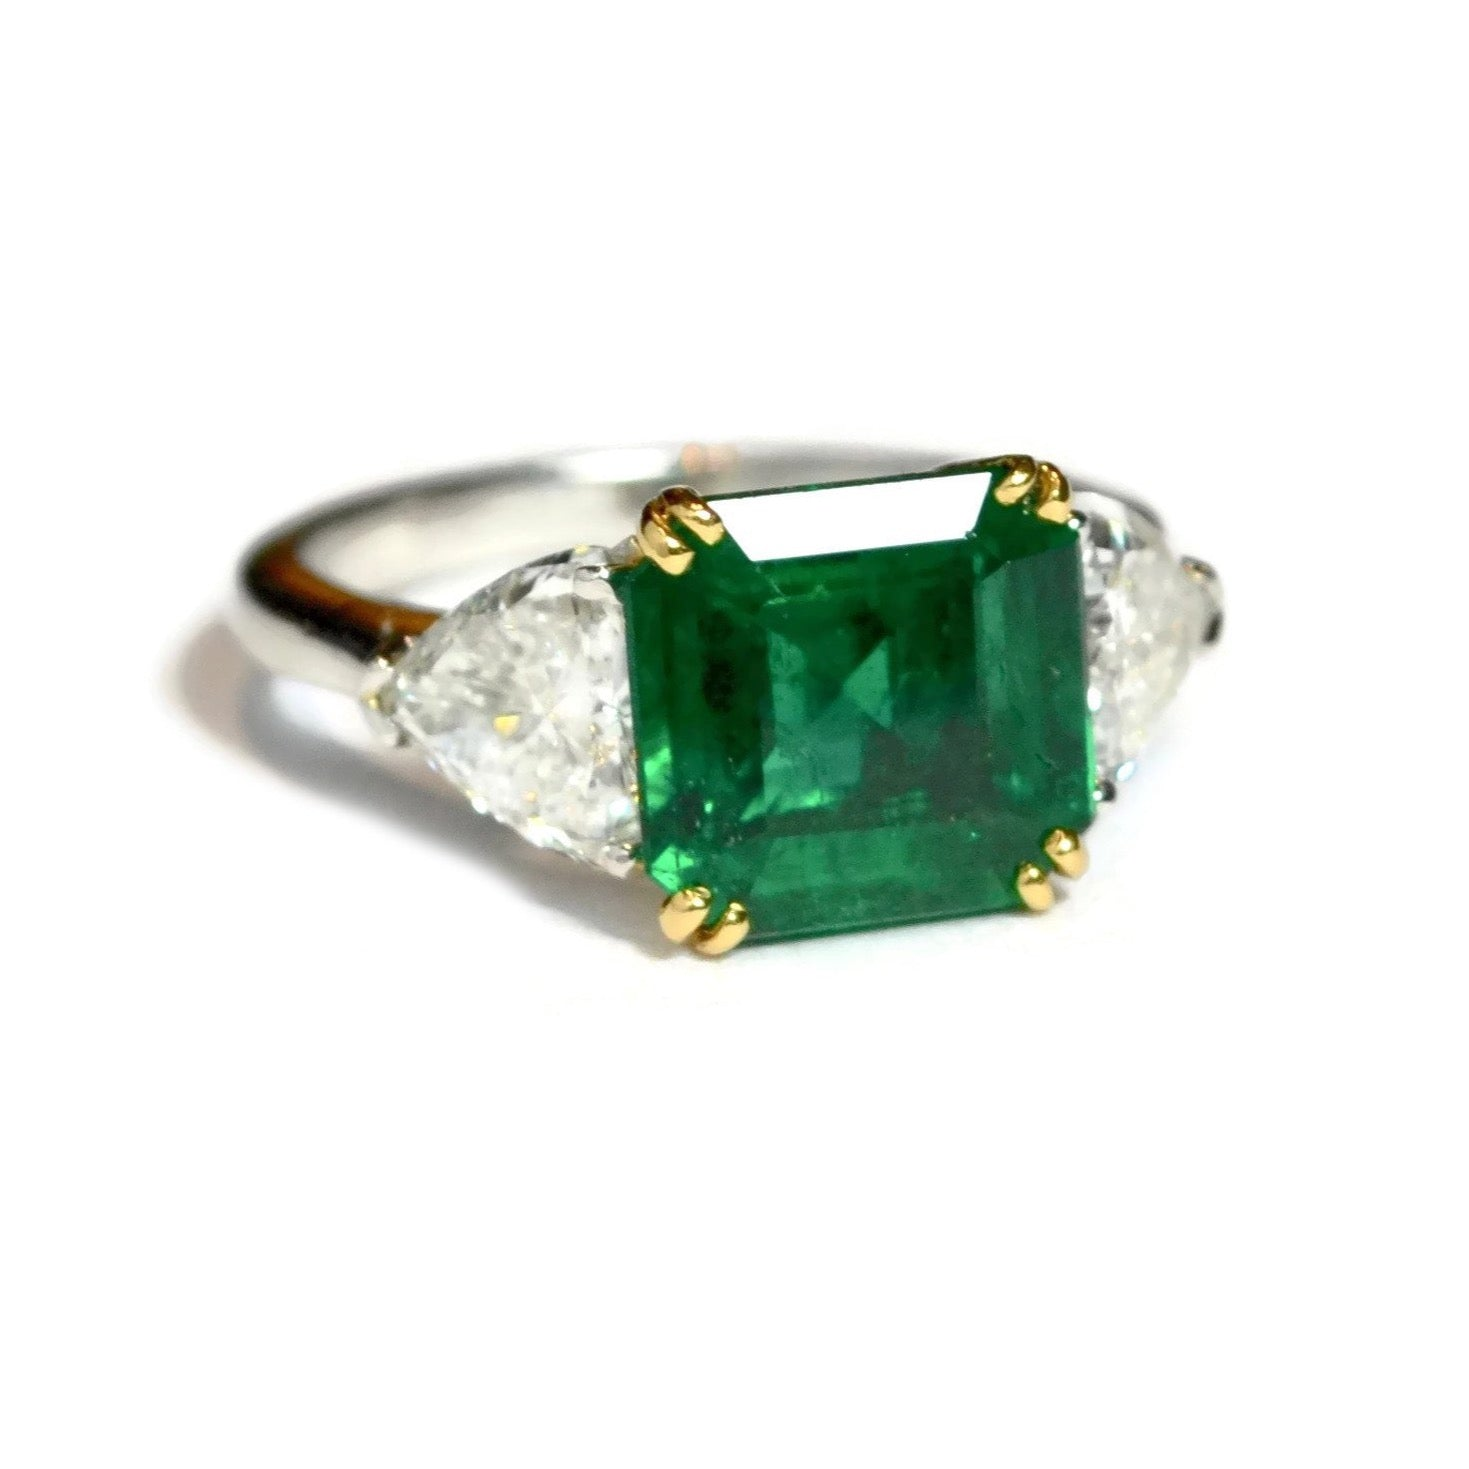 collections cut stones classic featuring side emerald diamond rings trilliant graff with a ring square